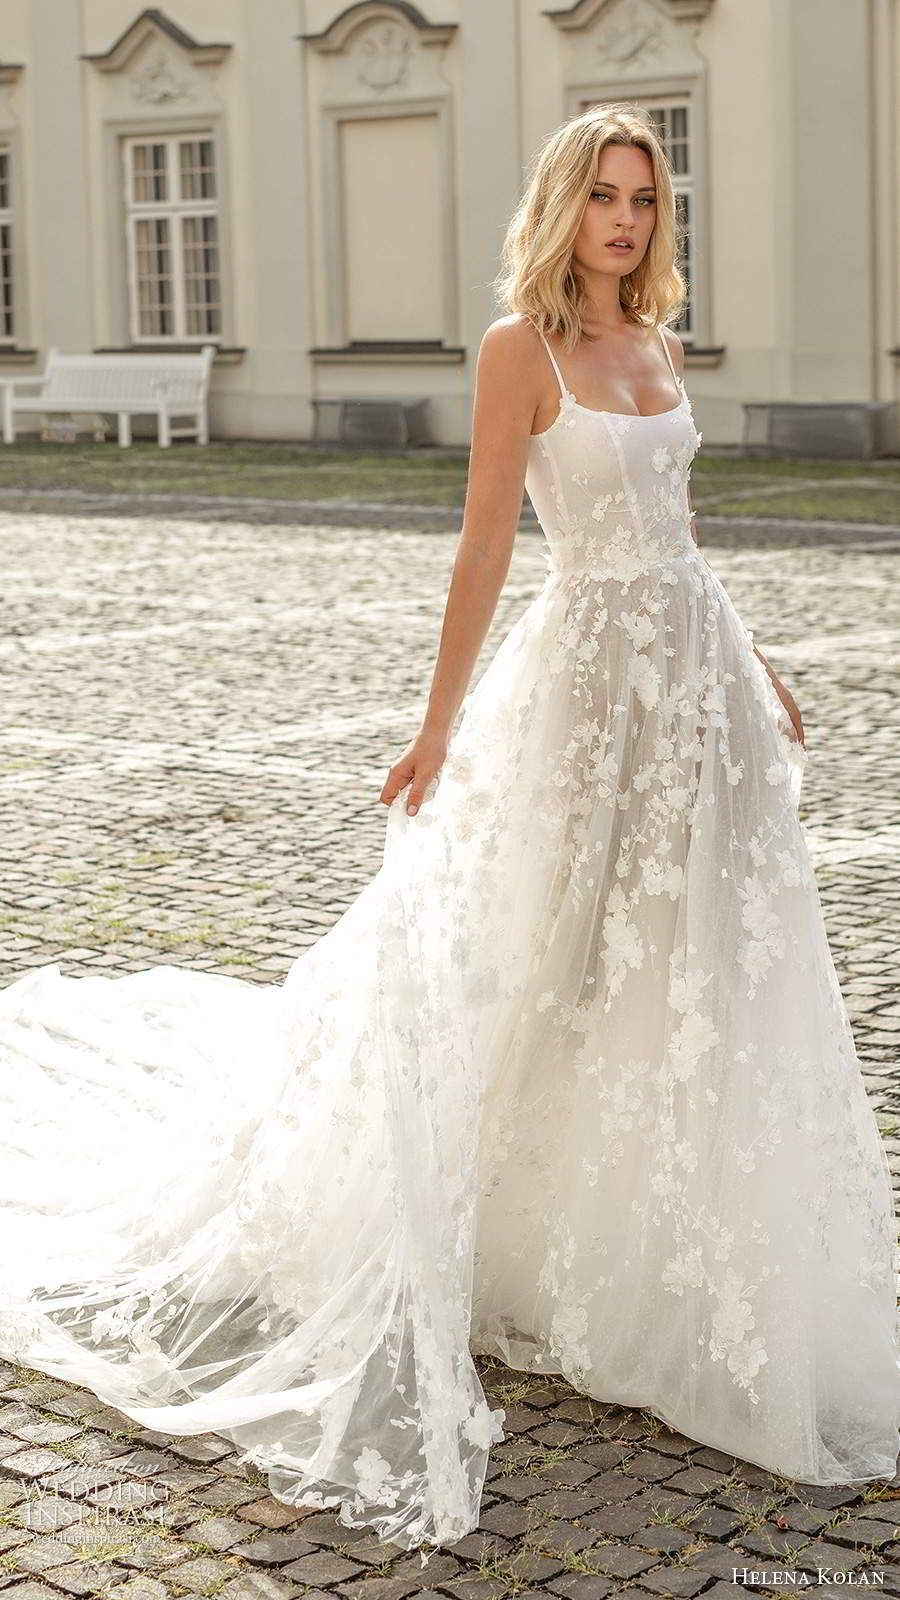 2020 New Fashion Dress Wedding Dresses Wedding Gowns Elegant African Dresses For Weddings Bridal Train Peplum Evening Gown